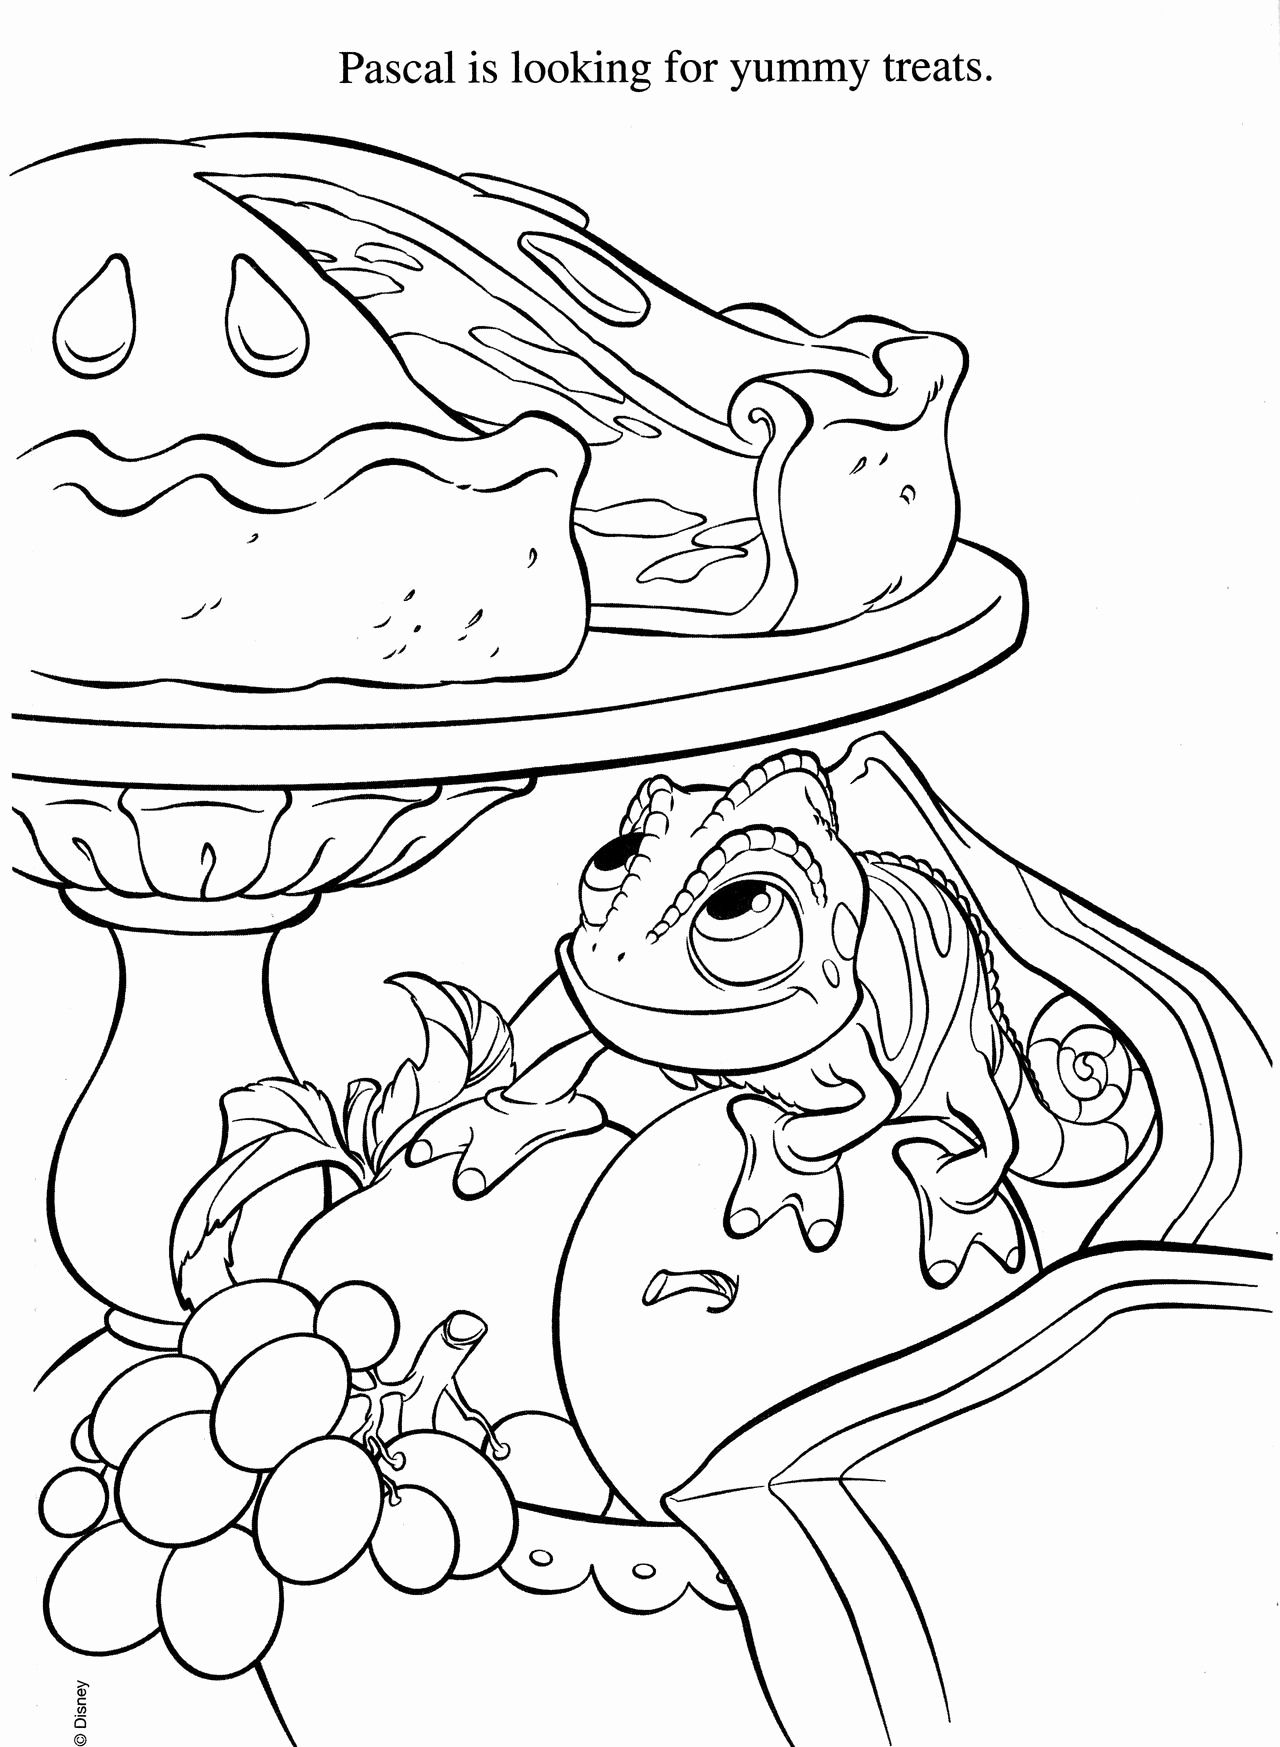 Disney Coloring Pages For Kids Pascal In